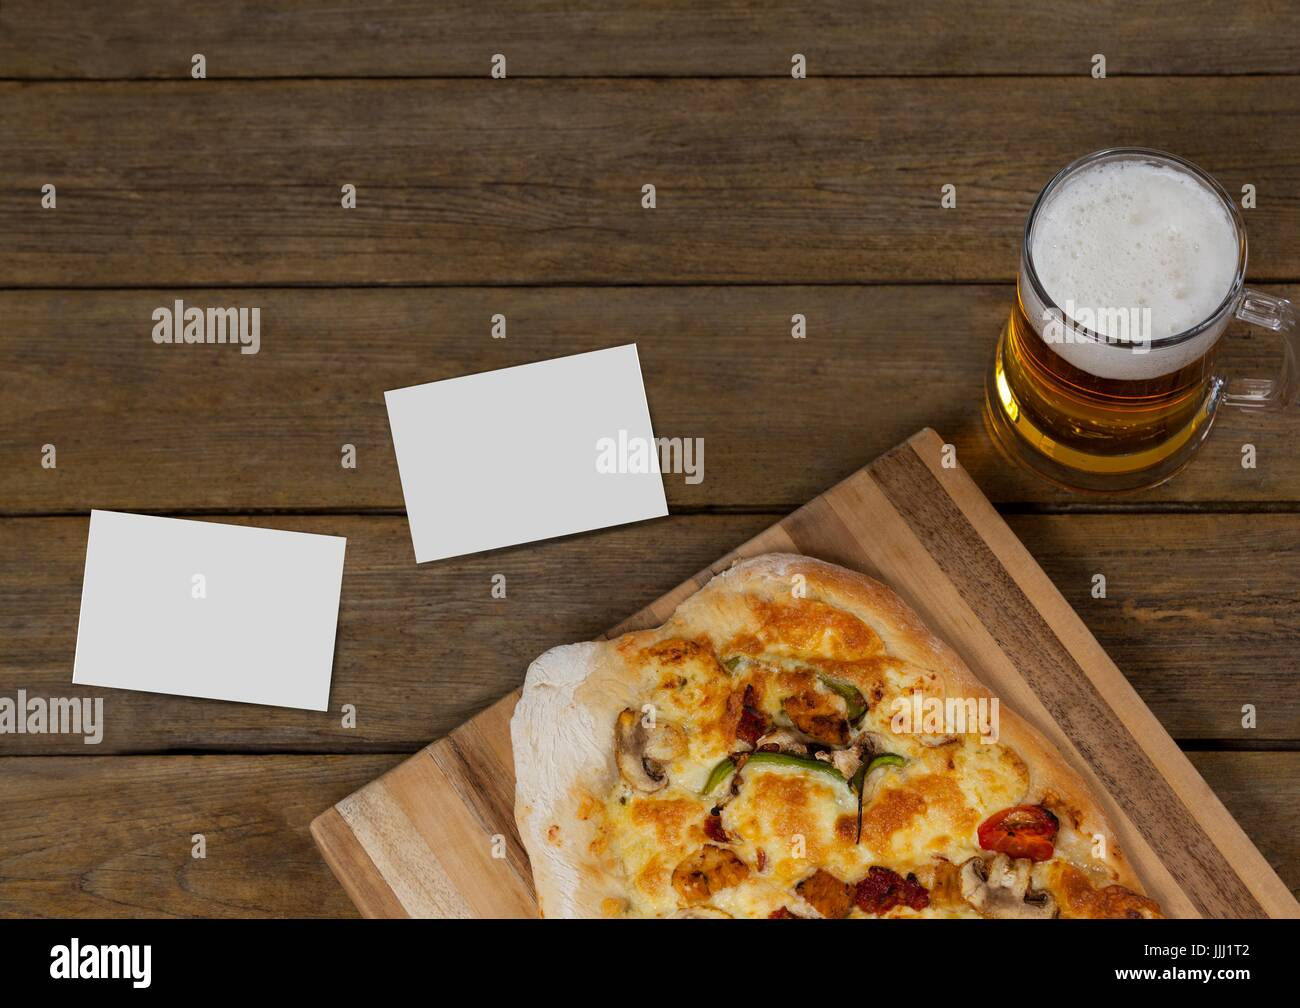 Bussiness cards on wooden desk with food and copy space - Stock Image